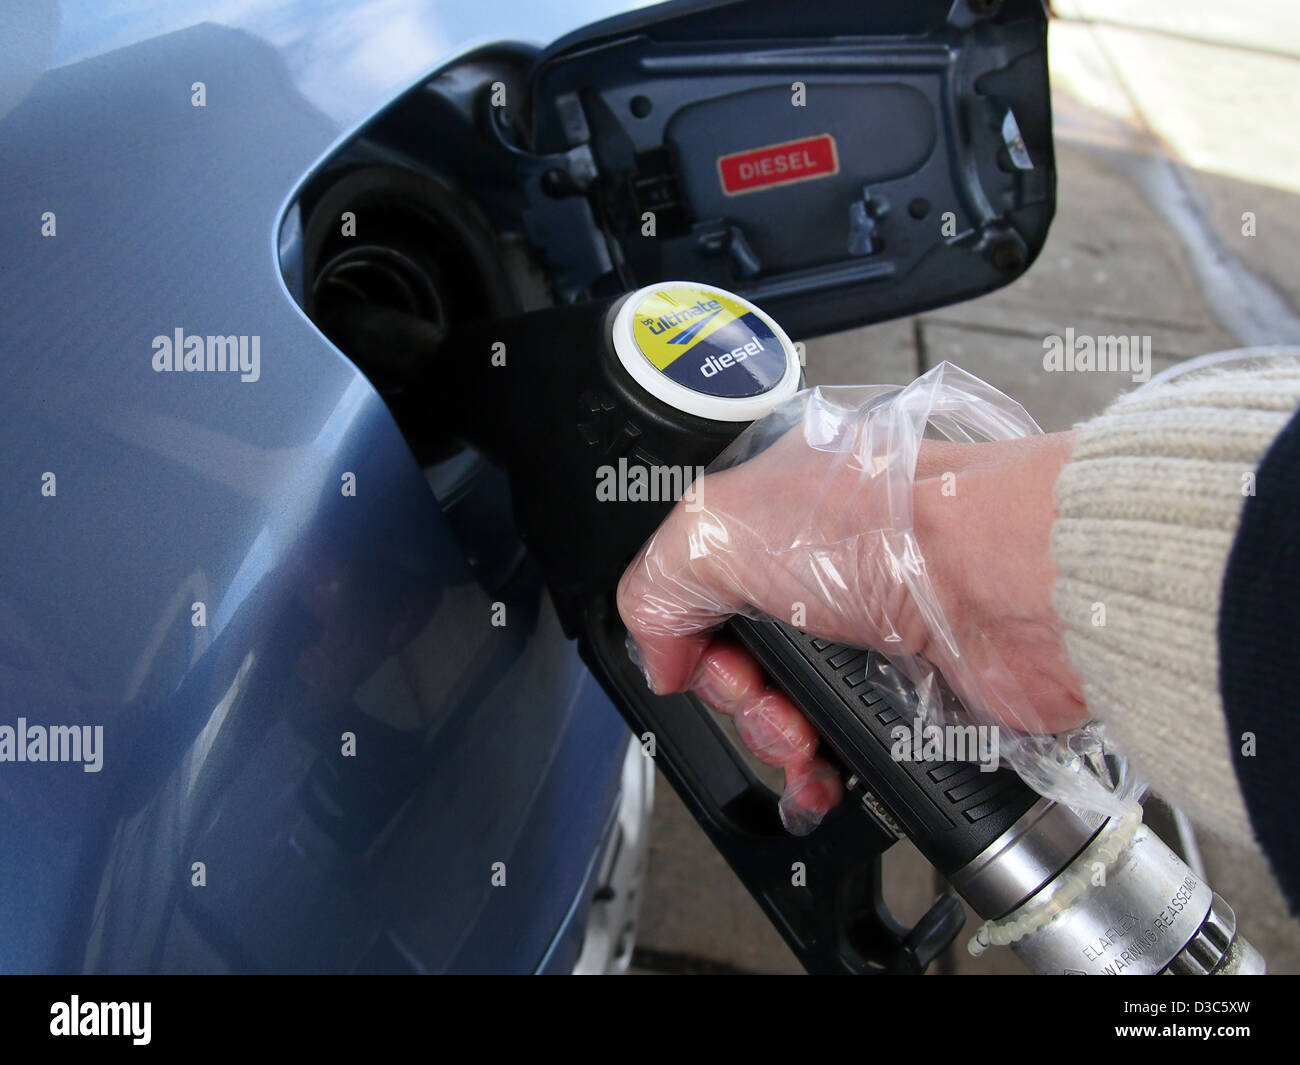 Nozzle filling up car with diesel - Stock Image